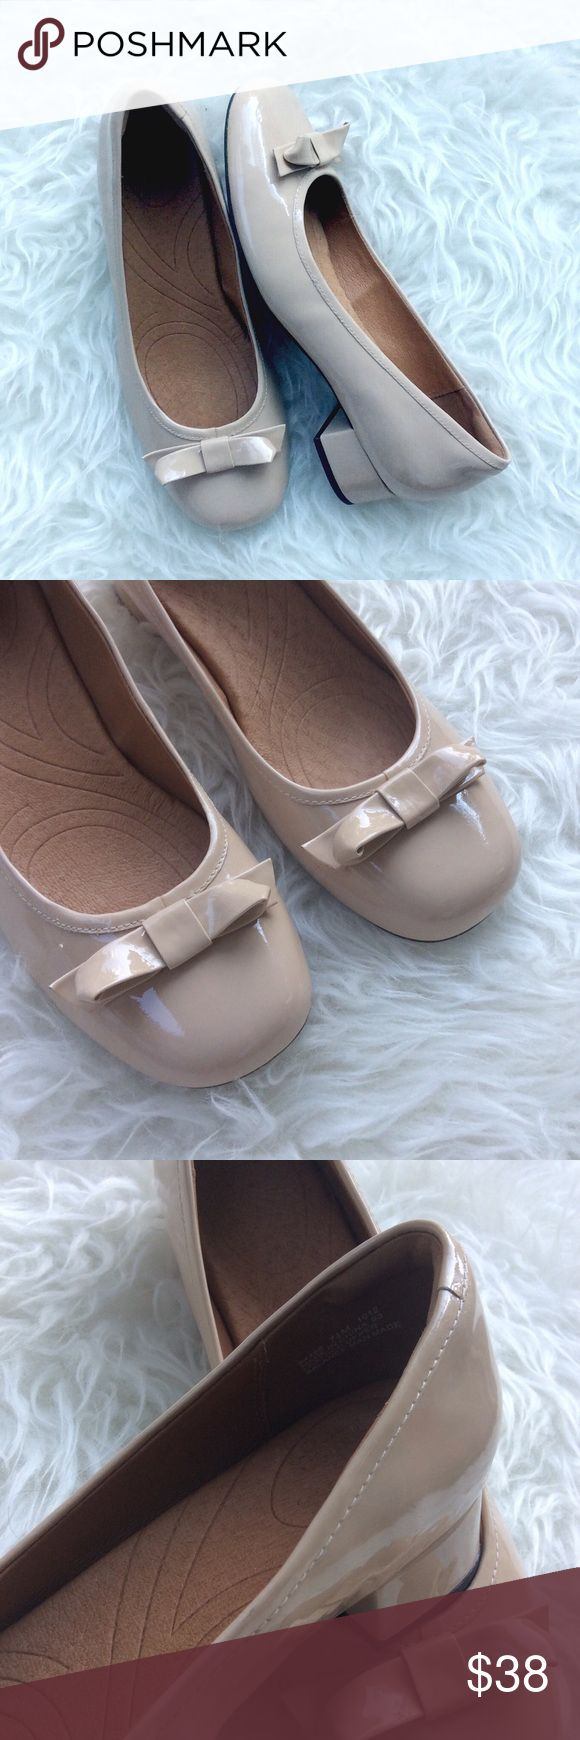 """Clarks Nude Patent Leather Ballet Heels Excellent, like new condition Clarks nude patent ballet heels. Size 7.5. Super comfy, leather. 1"""" heels. No trades, offers welcome. Clarks Shoes Flats & Loafers"""